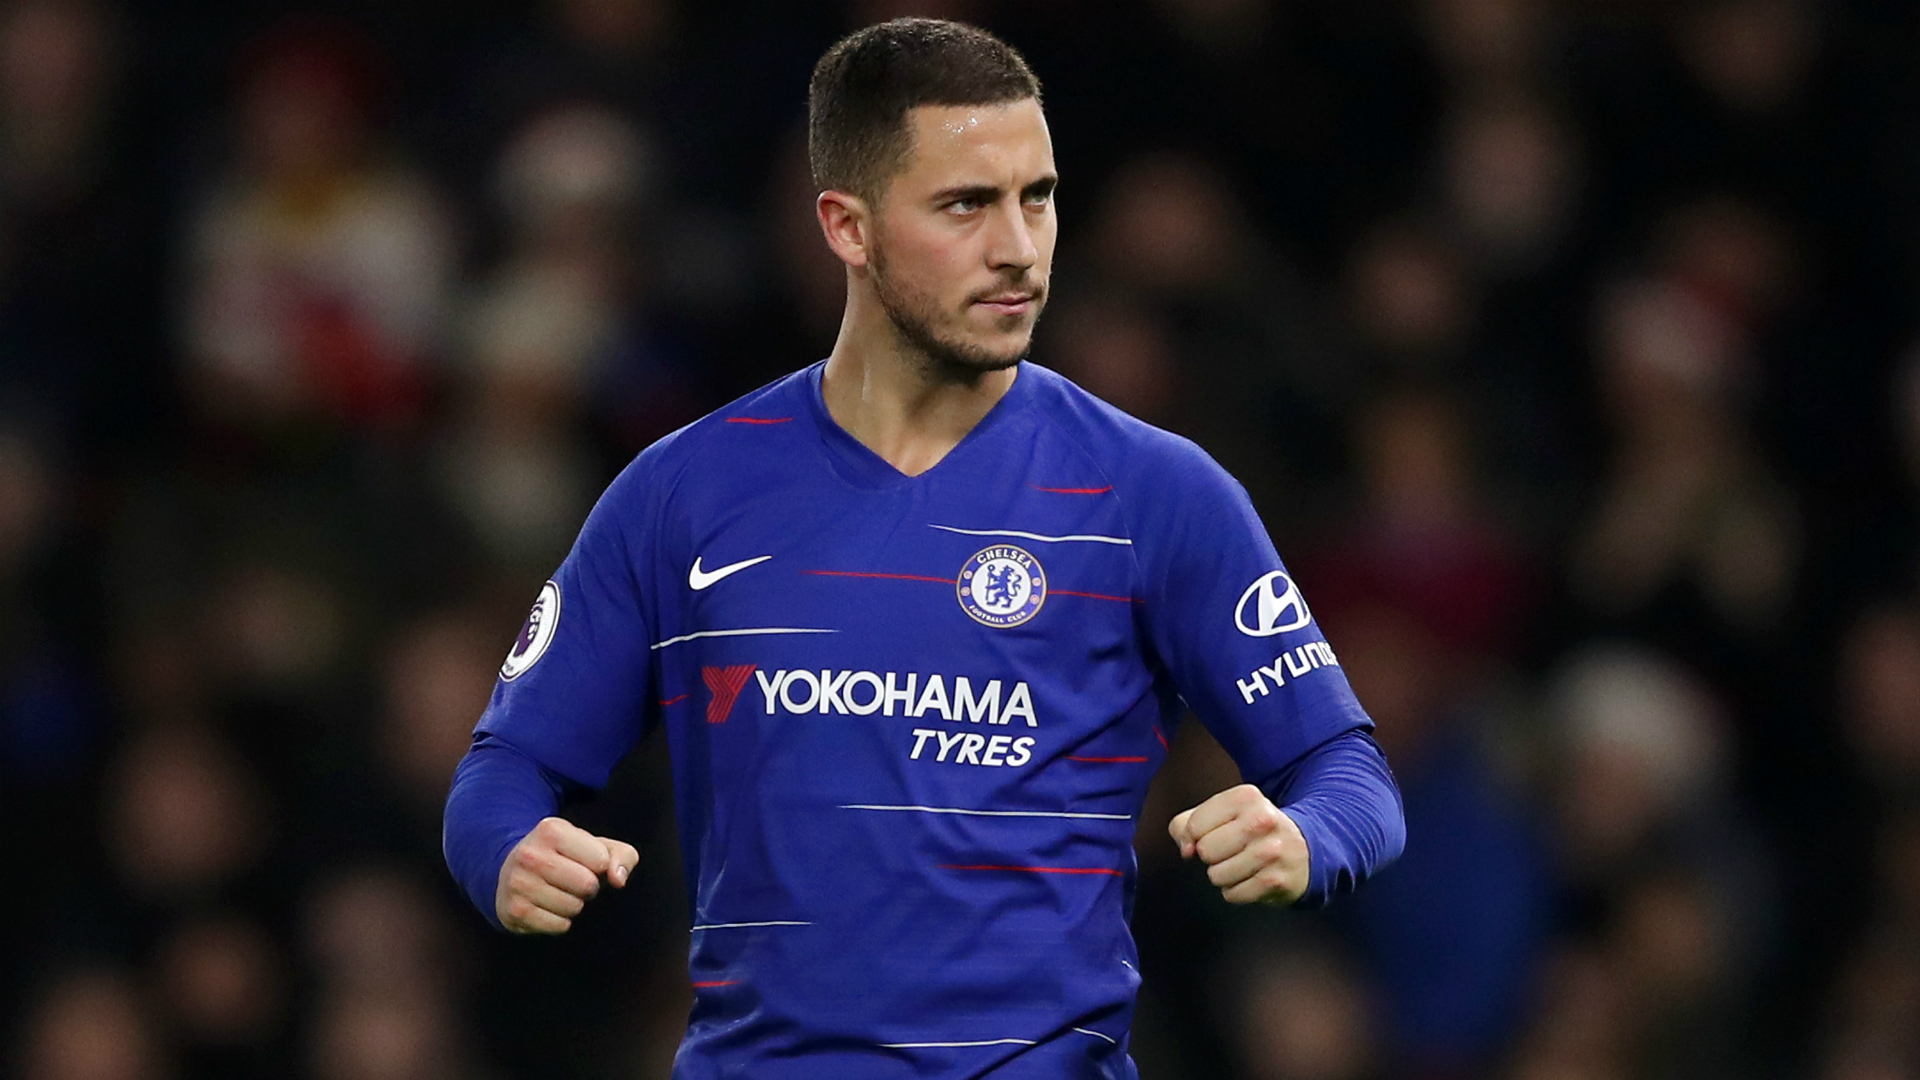 Hazard must be more demanding if he wants to leave Chelsea, says Ballack